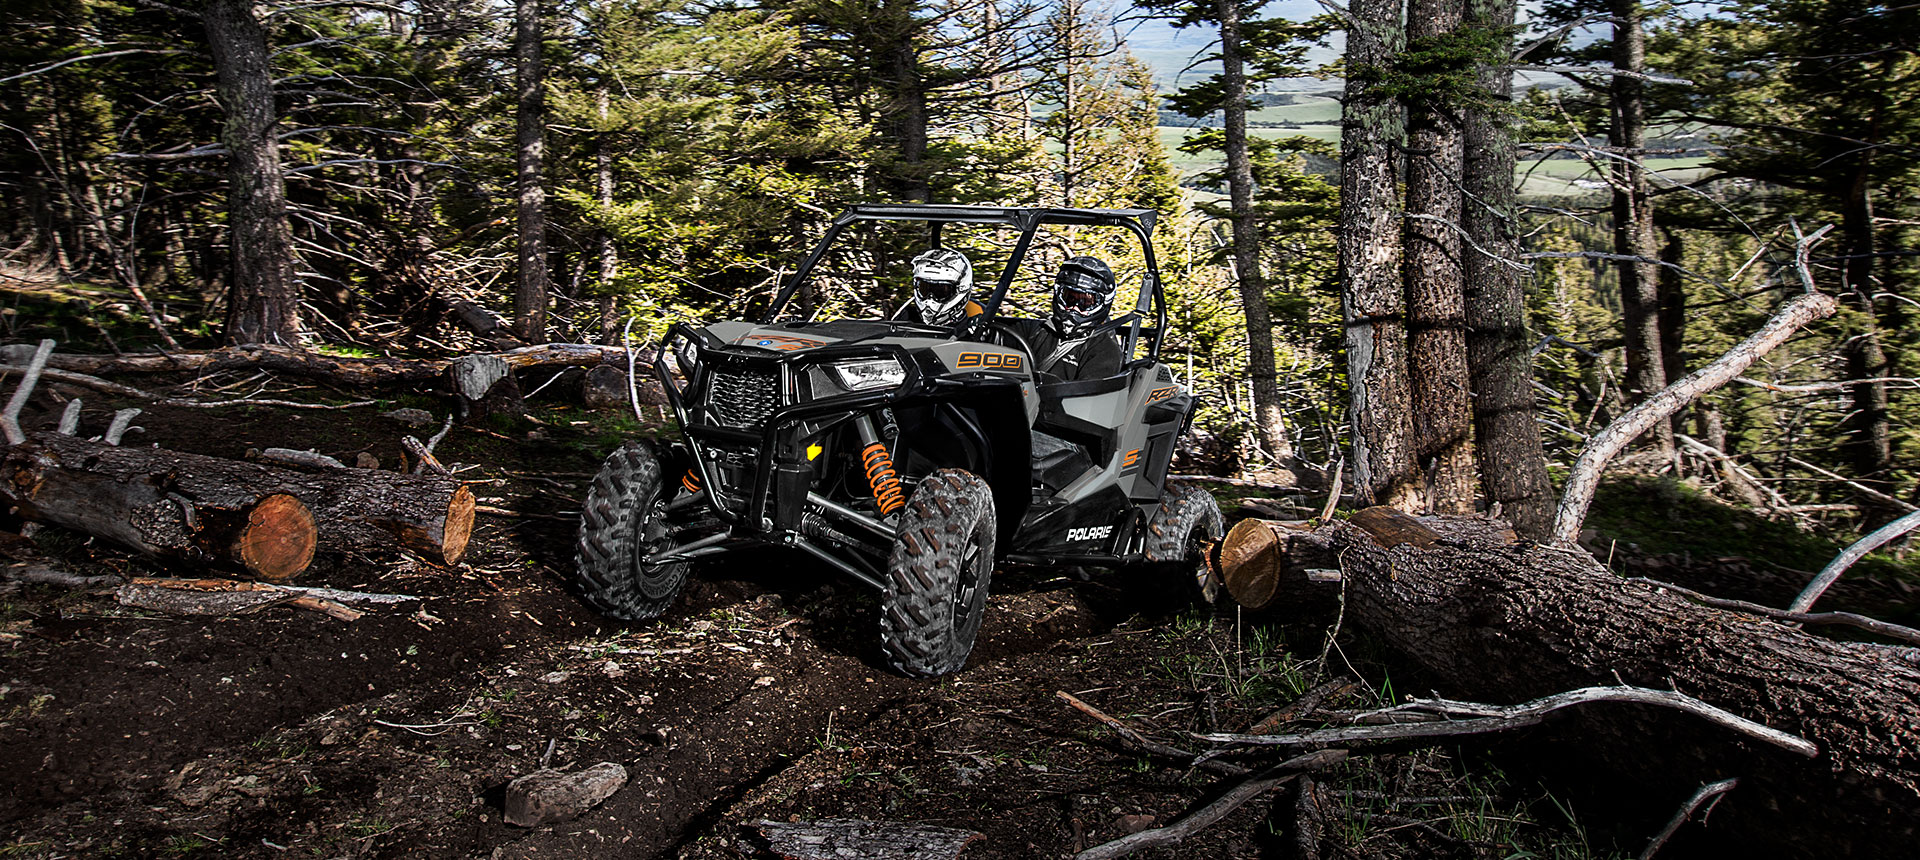 2019 Polaris RZR S 900 EPS in Joplin, Missouri - Photo 2